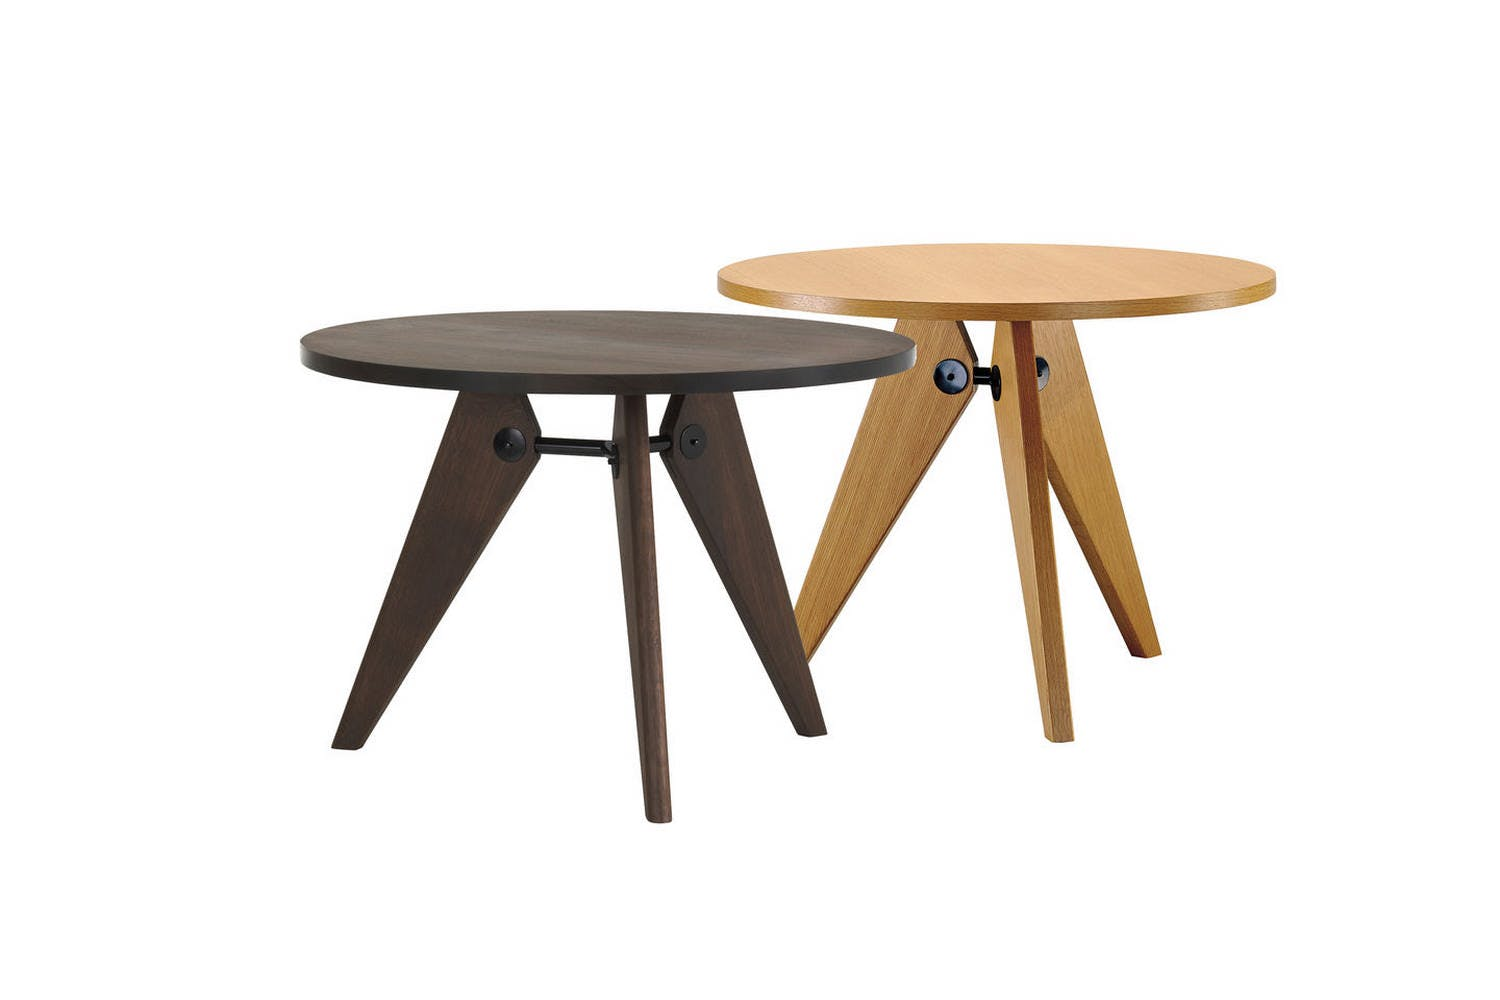 gueridon table by jean prouve for vitra space furniture. Black Bedroom Furniture Sets. Home Design Ideas